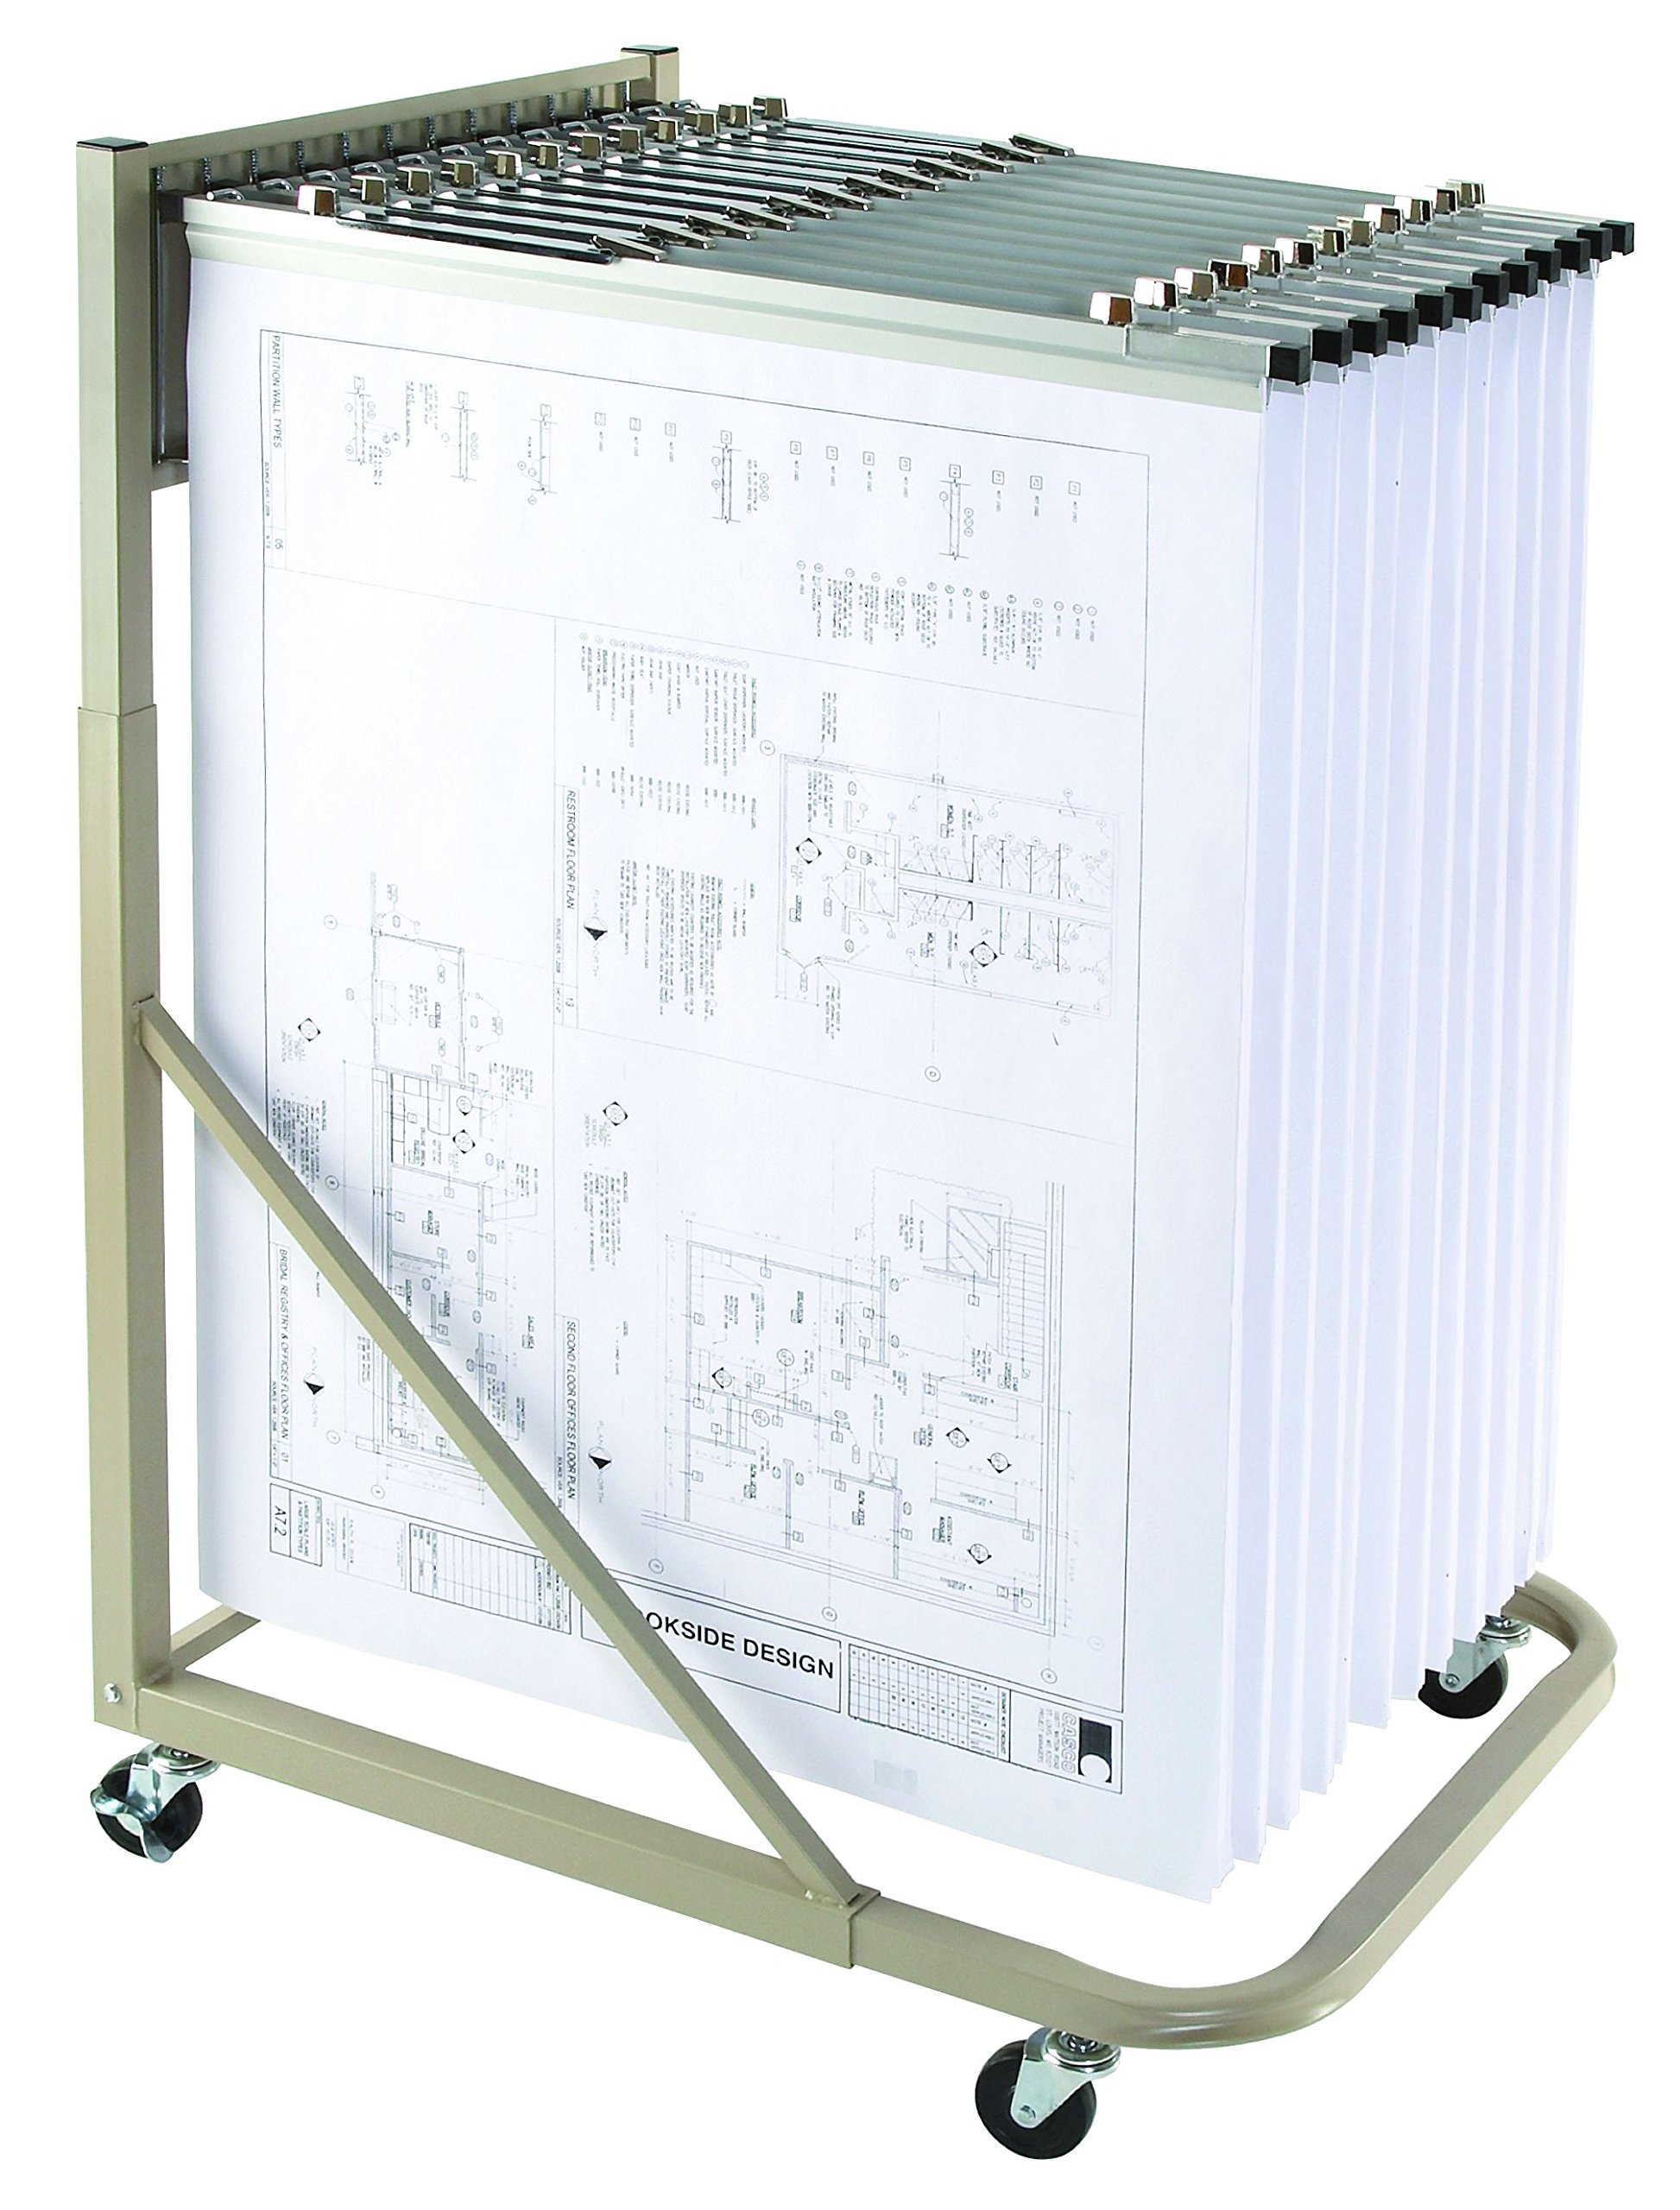 Mayline 9329H Rolling Stand for Blueprints - This is a Brookside Design Replacement